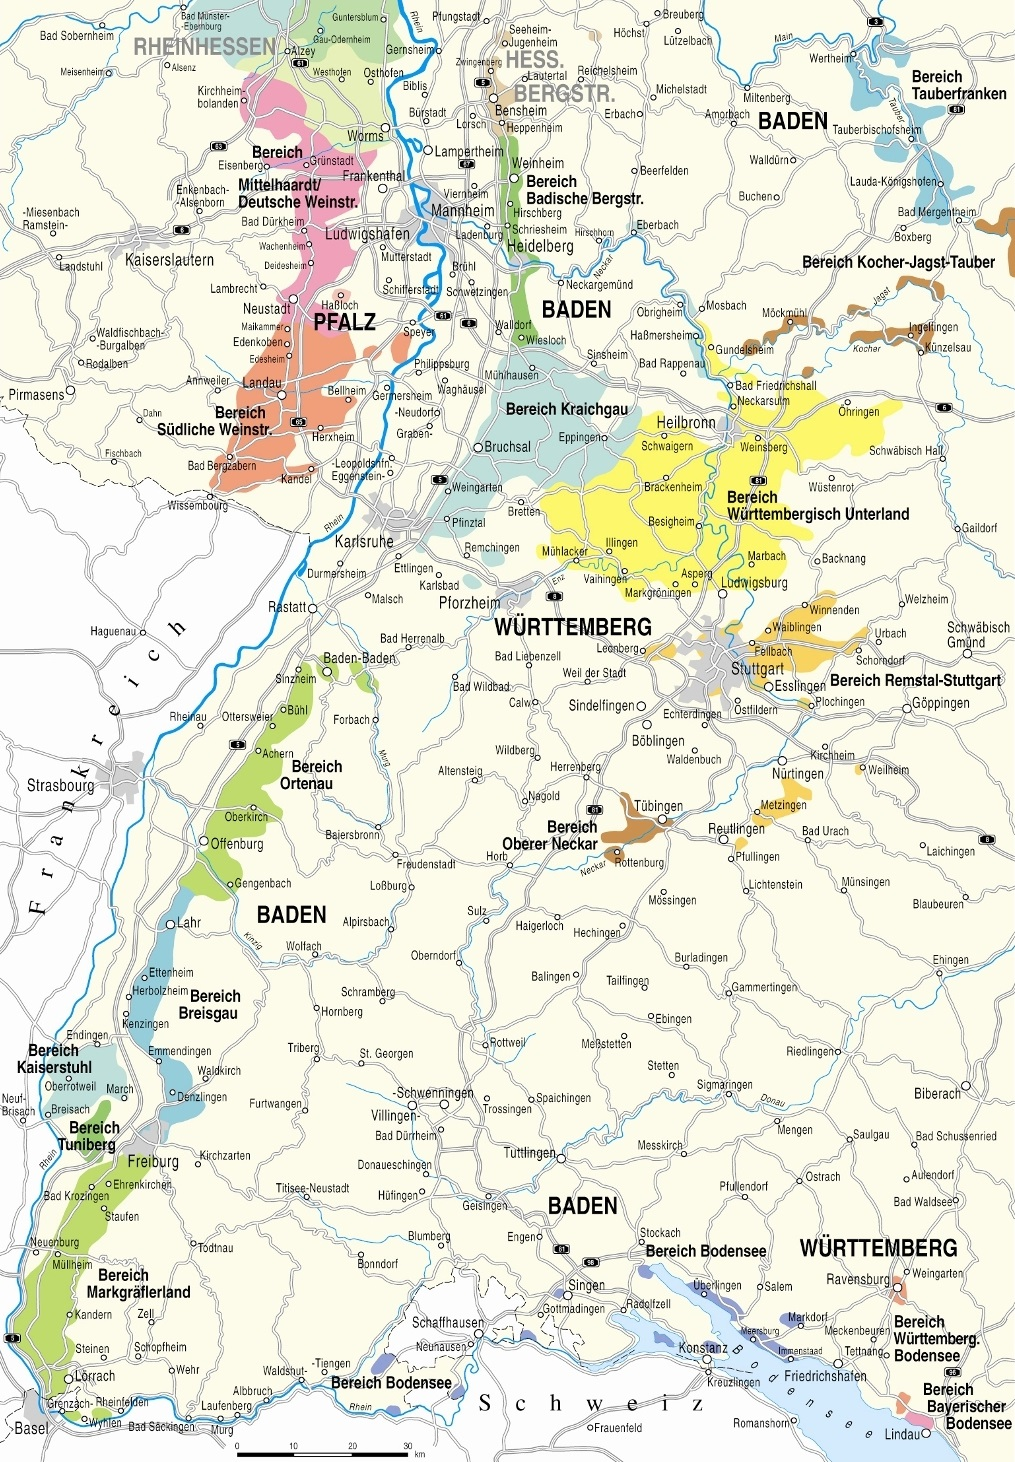 Map of the Baden region